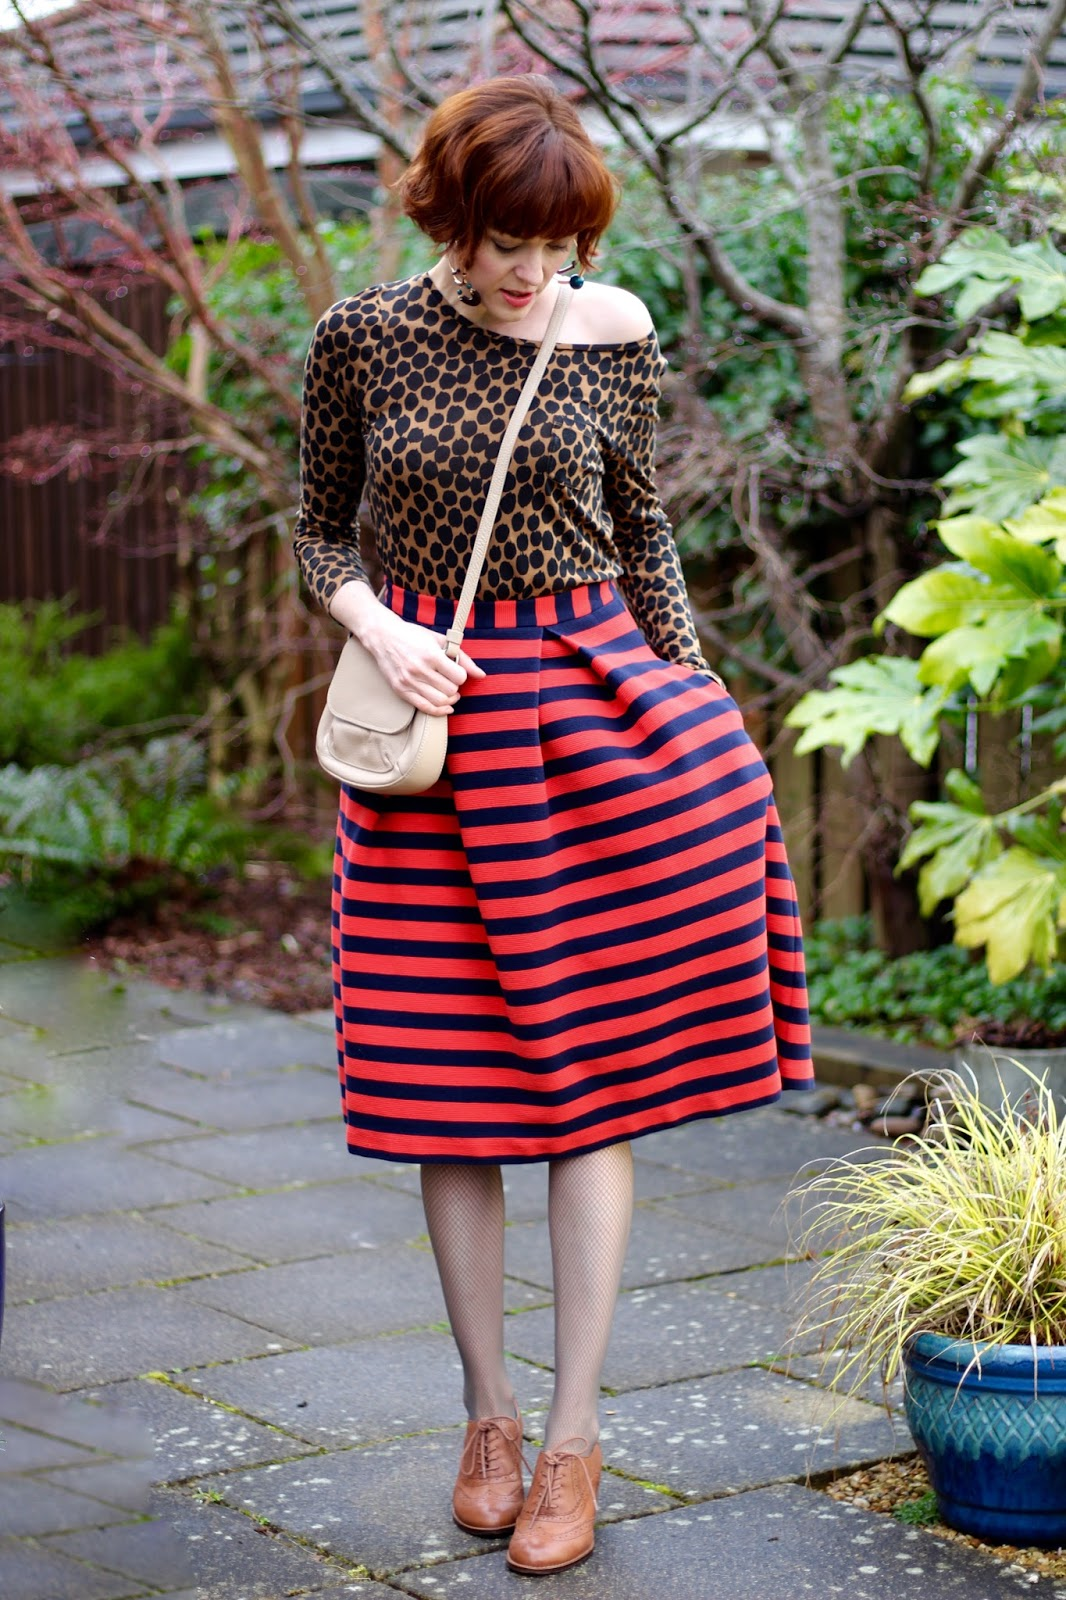 Boden Midi Skirt, Leopard top, Chunky Brogues &Fishnet tights | Fake Fabulous | 4 ways to wear fishnets